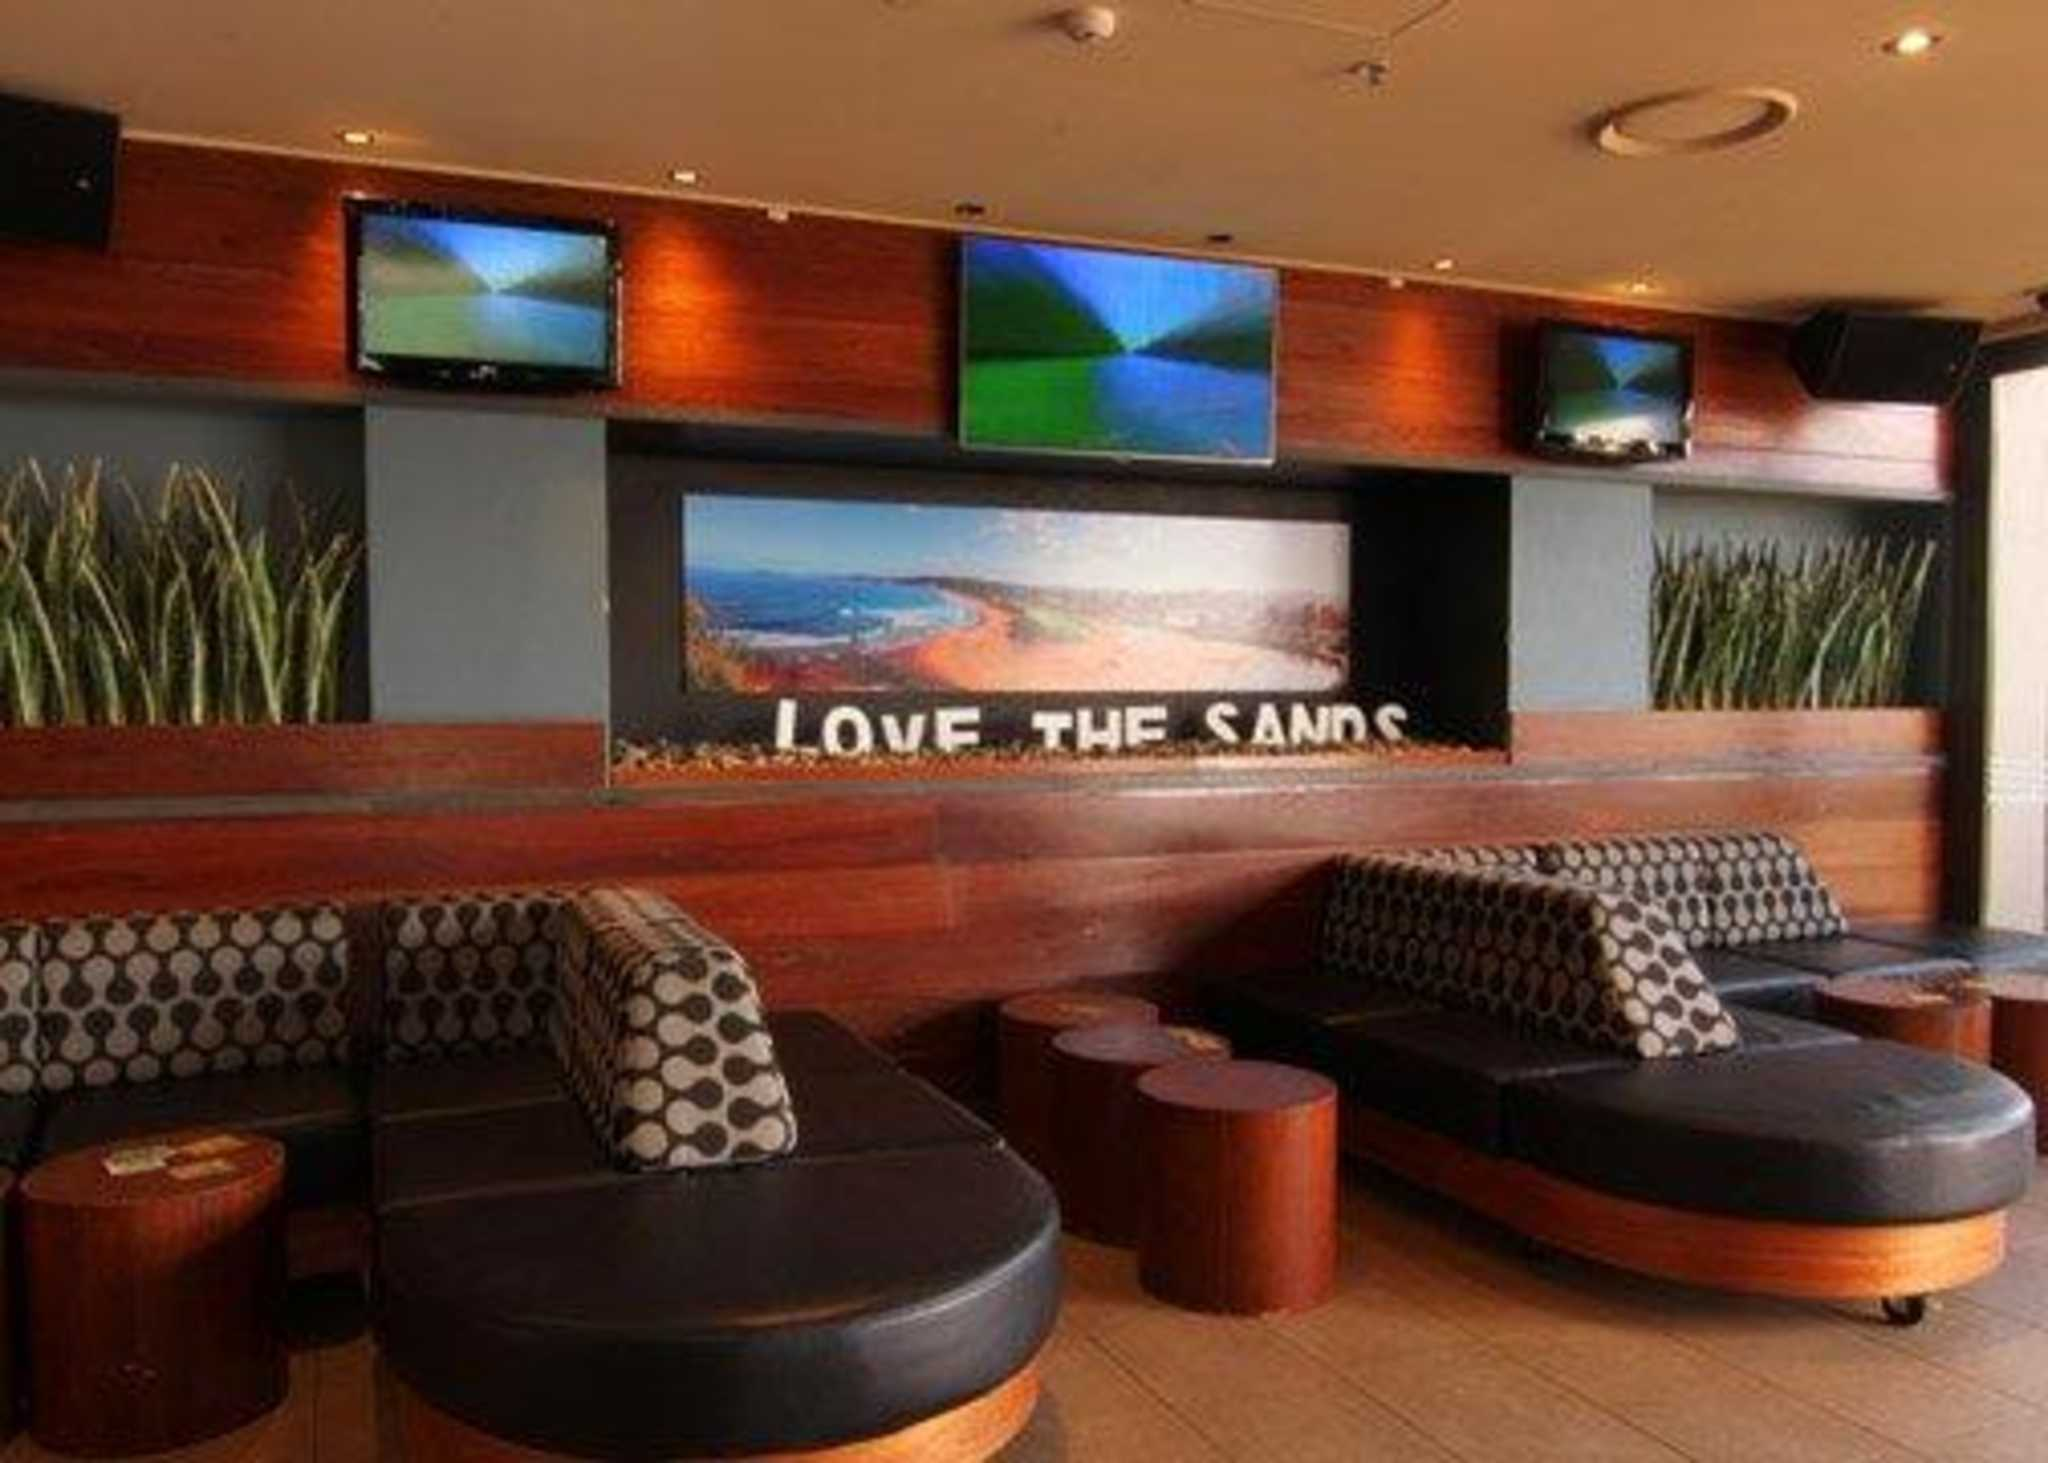 Quality Hotel Sands Narrabeen (02) 9970 8578